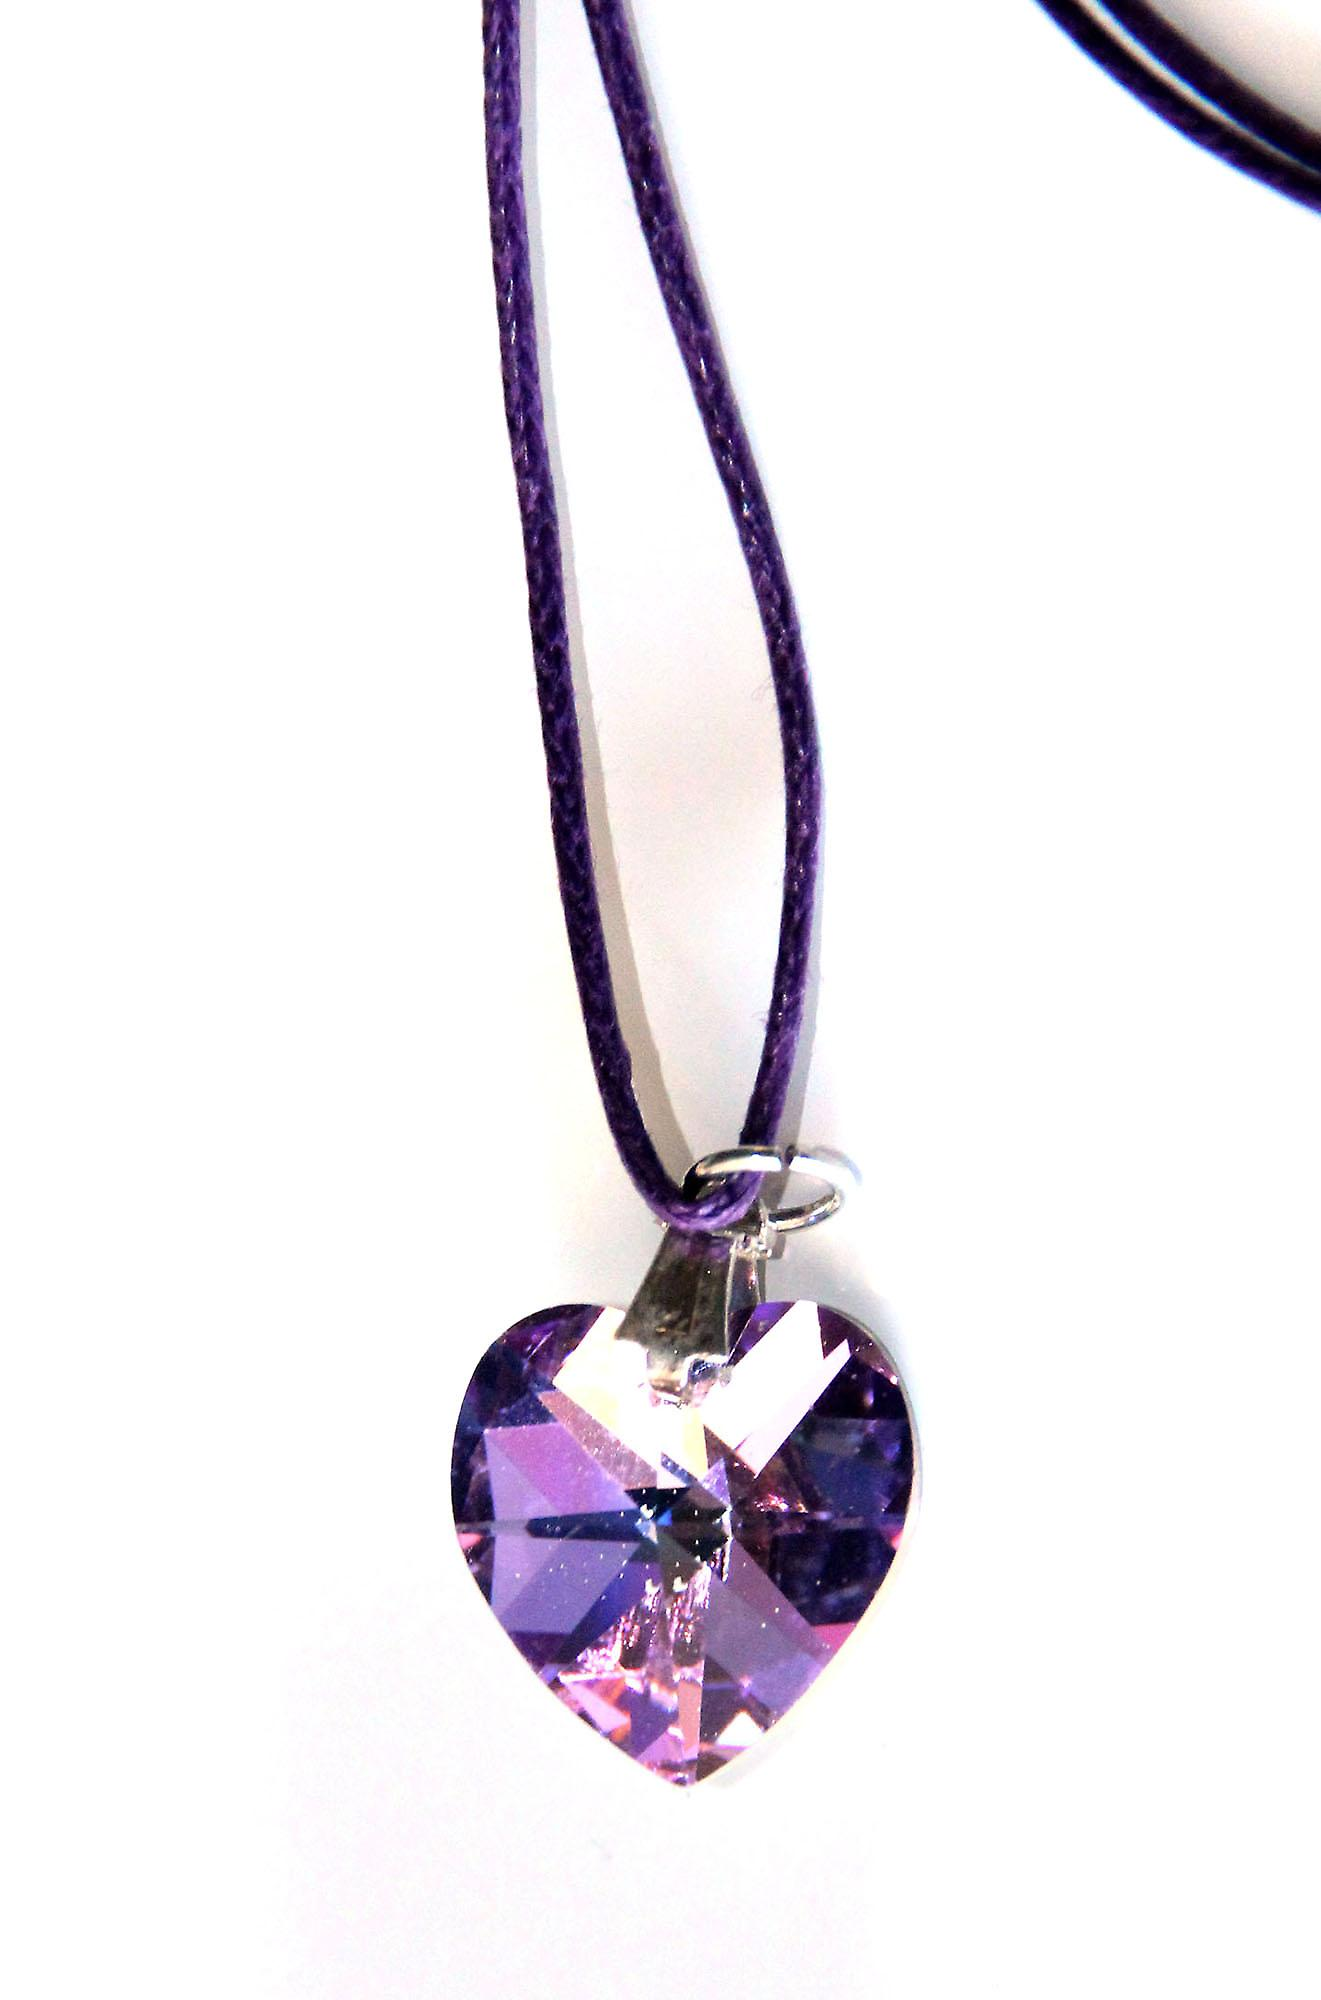 Waooh - Jewelry - Swarovski / Pendant heart with purple and blue center waxed cord